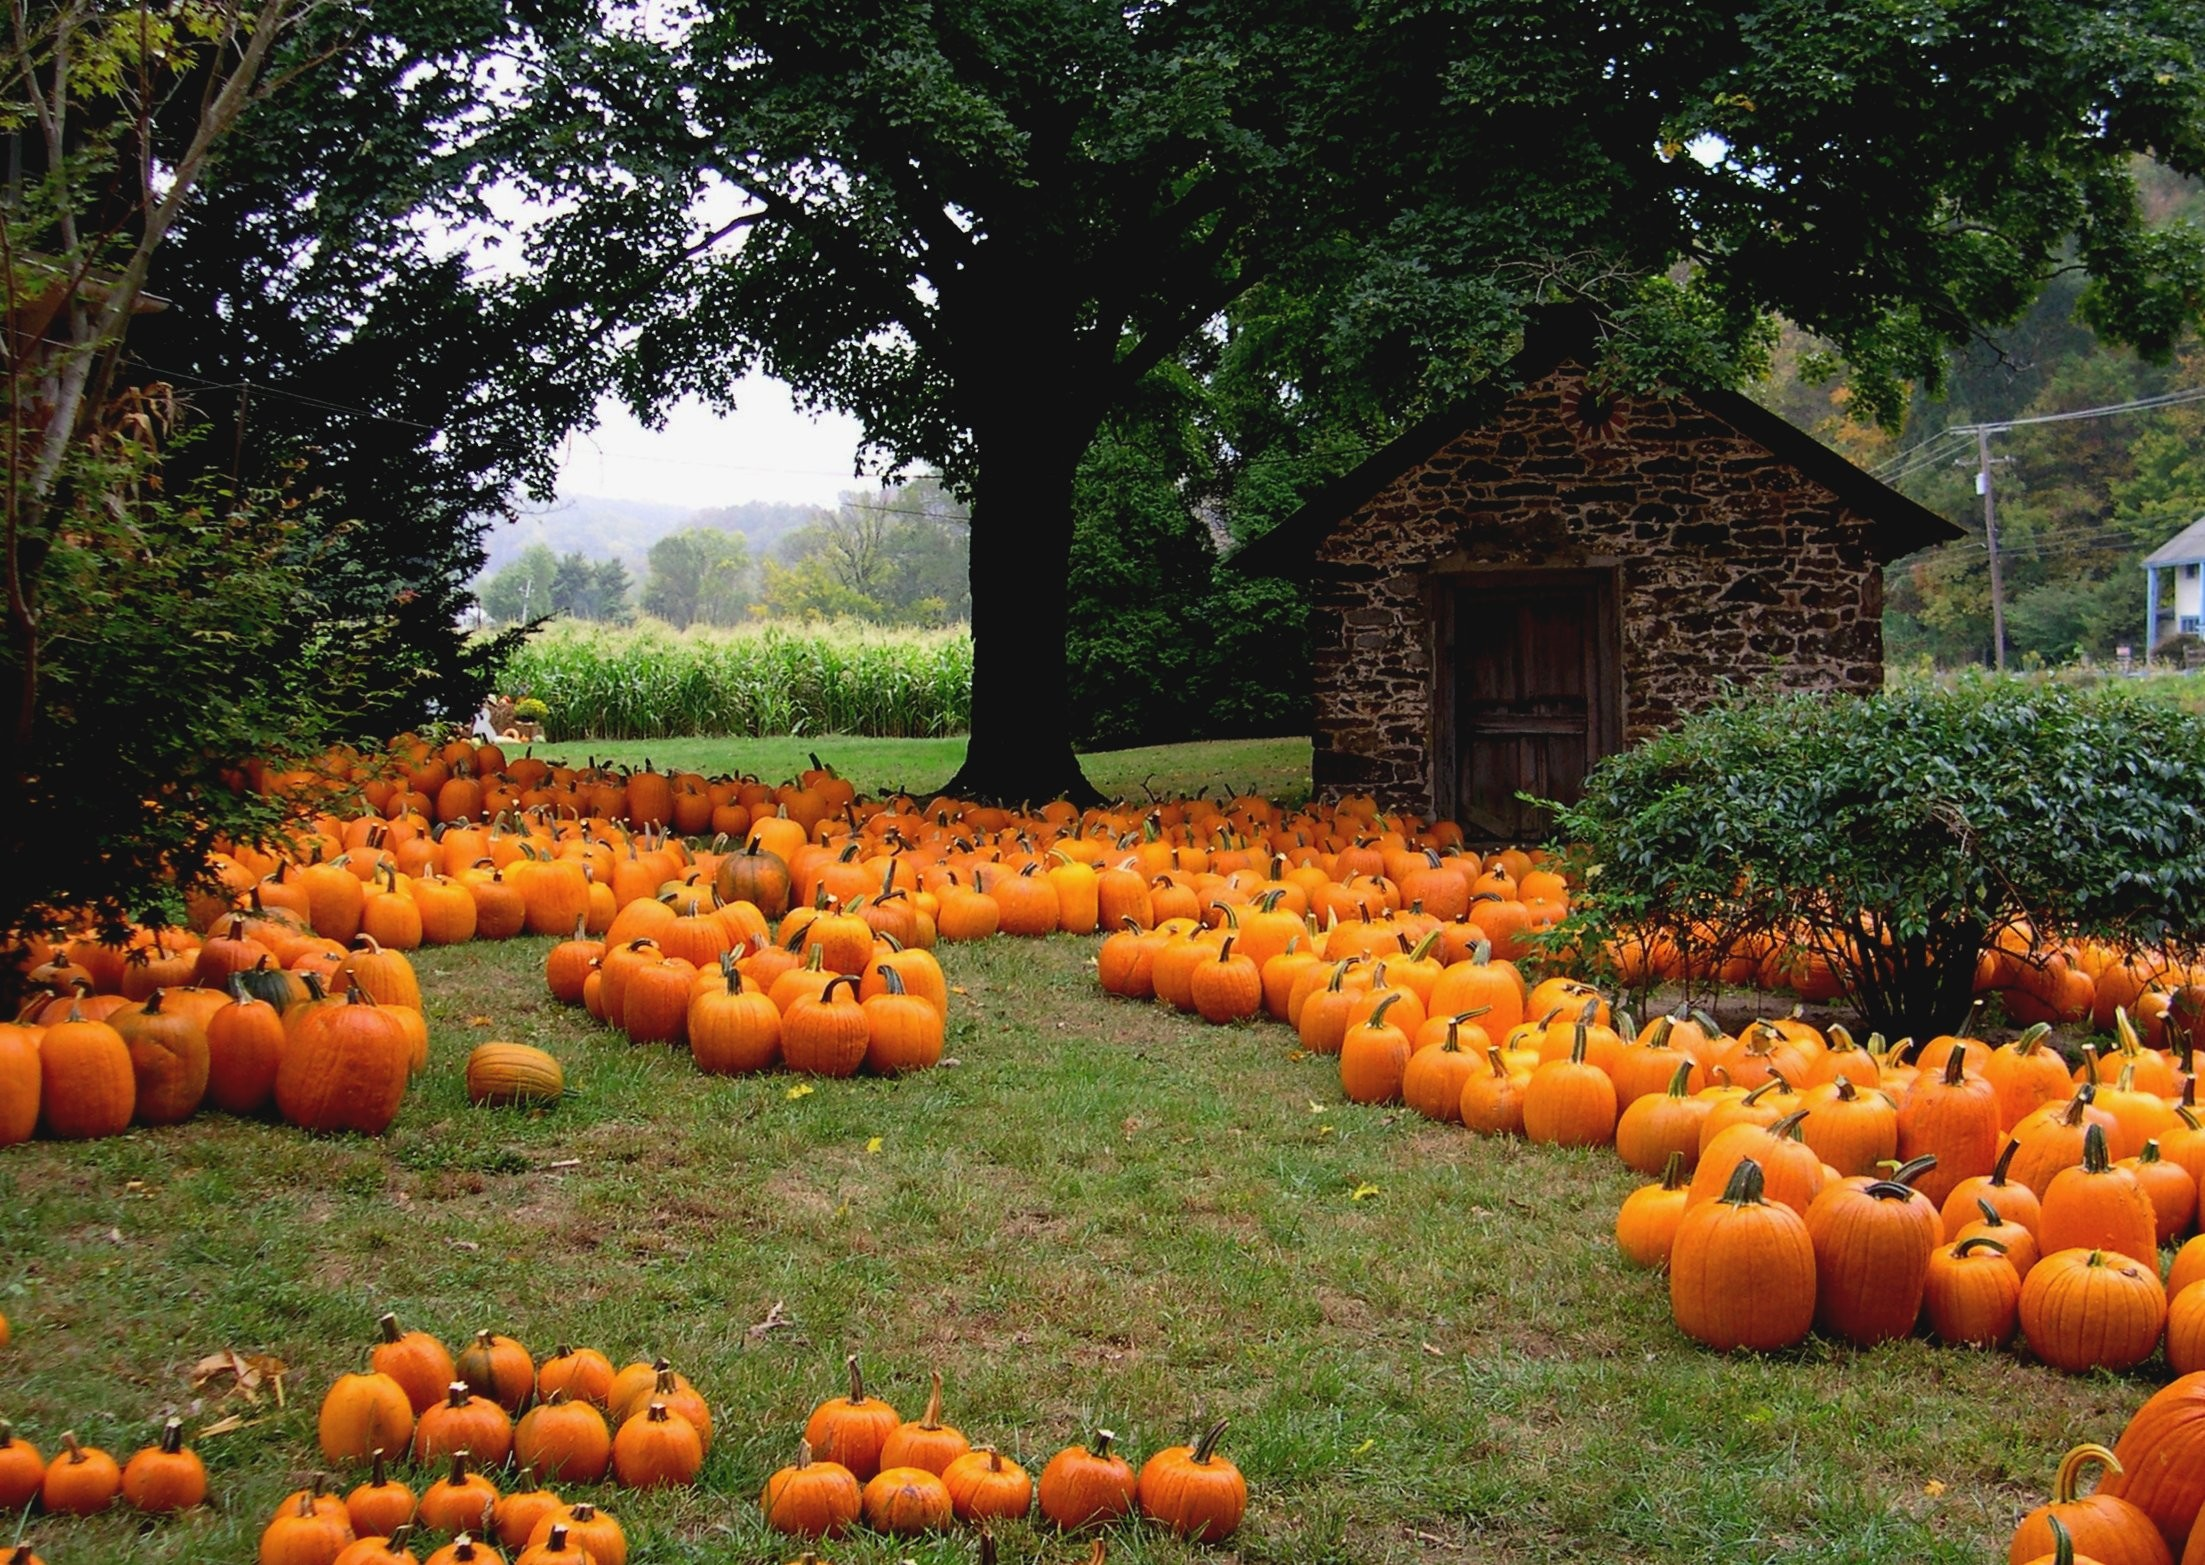 11 Things To Do In The Fall With Your Friends